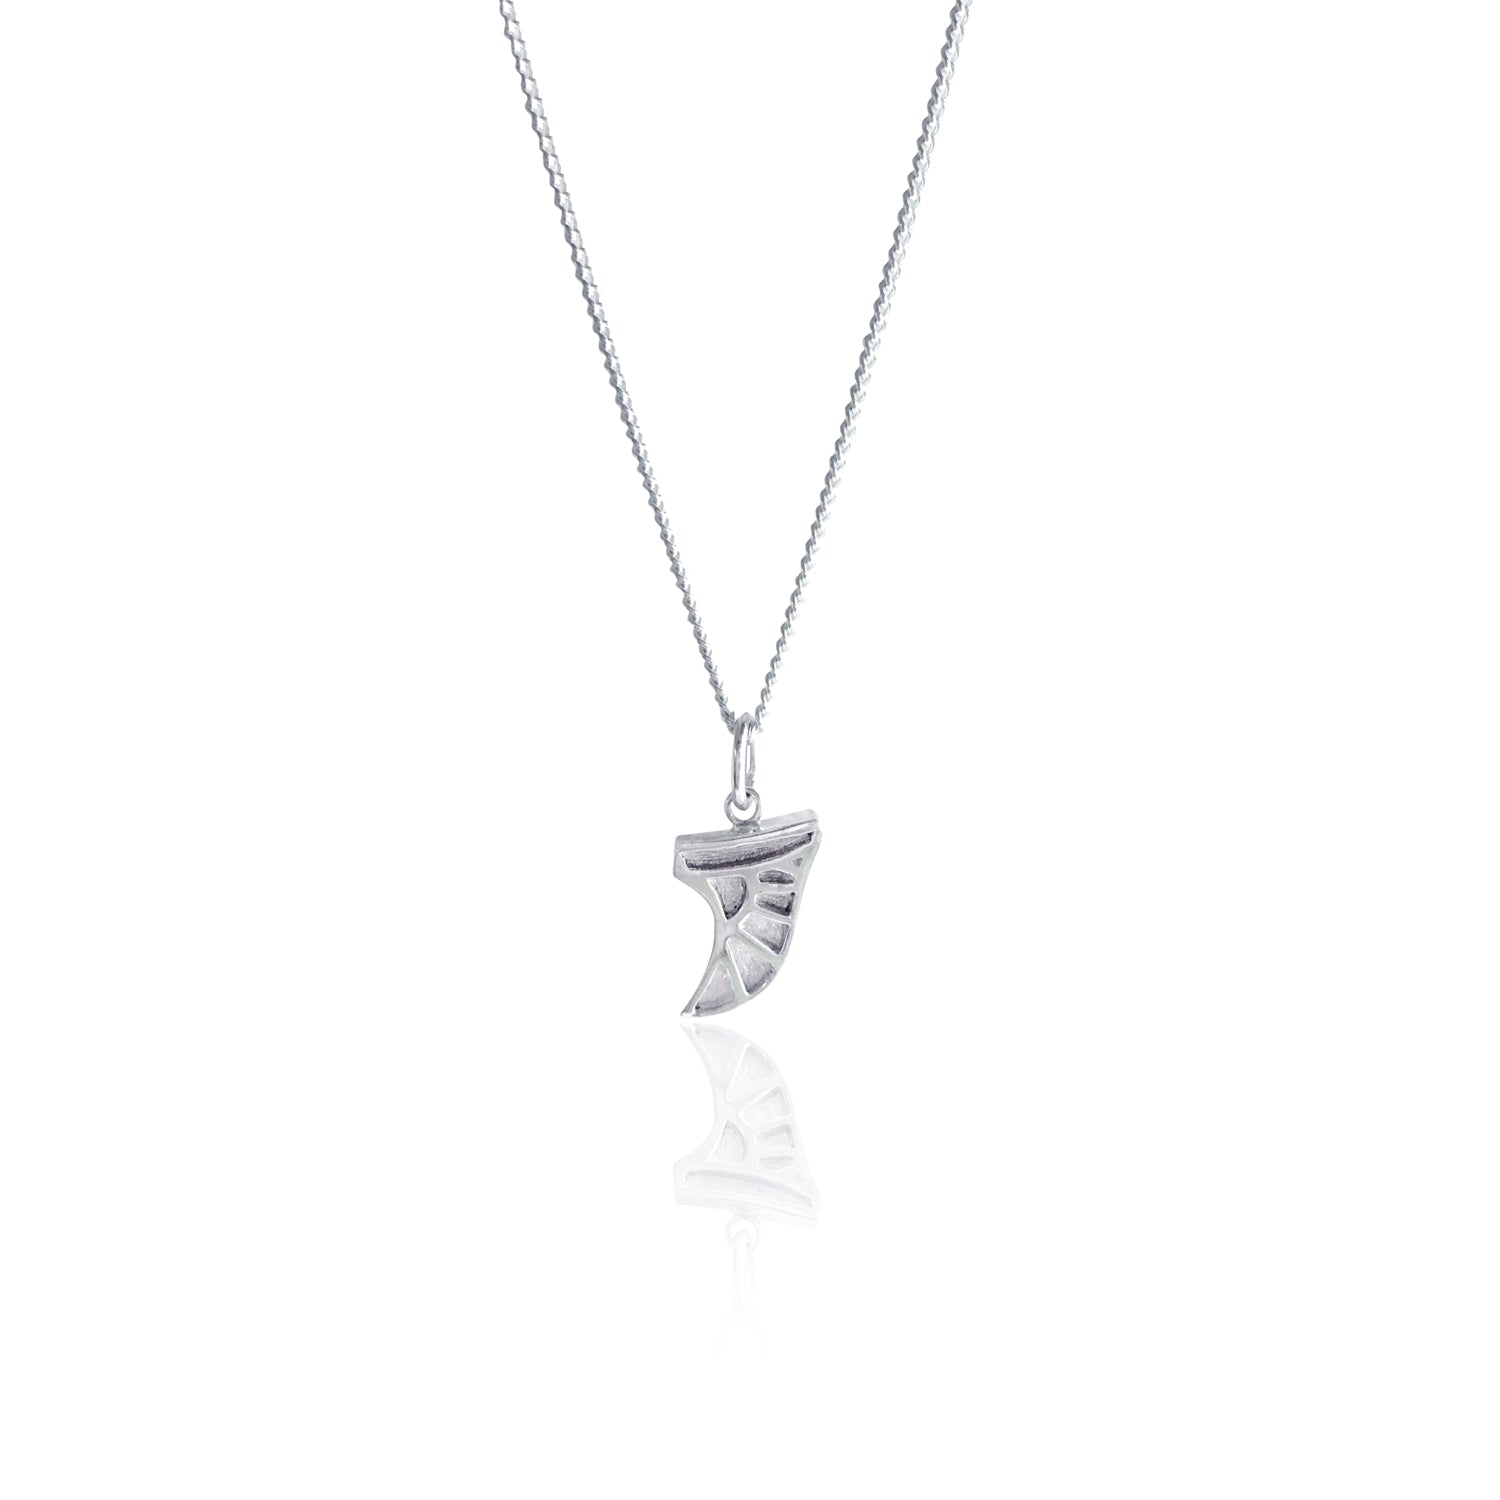 La Luna Rose Collaboration Necklace wit hGoldfish Kiss Blogger - Surf Fin Charm in Silver